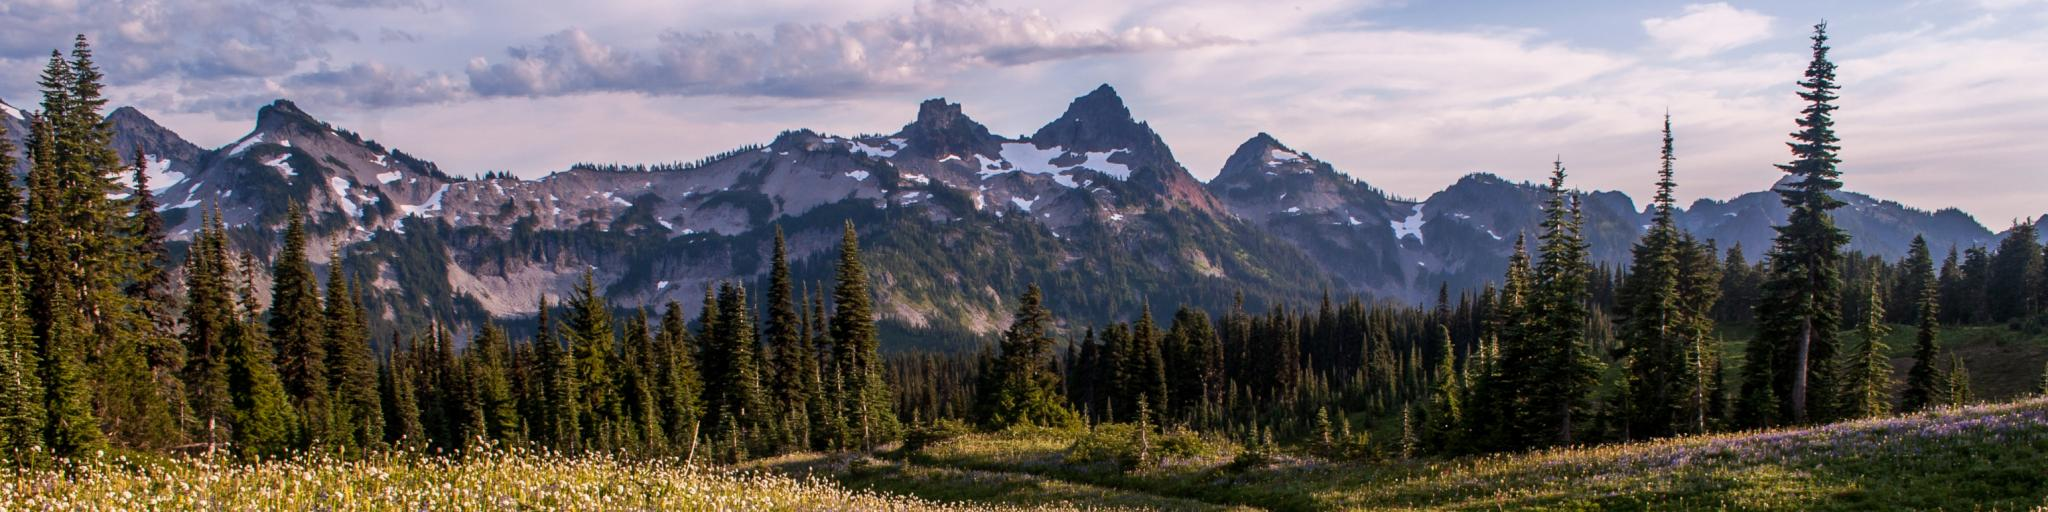 Pacific Northwest road trip goes through the Mt Rainier National Park